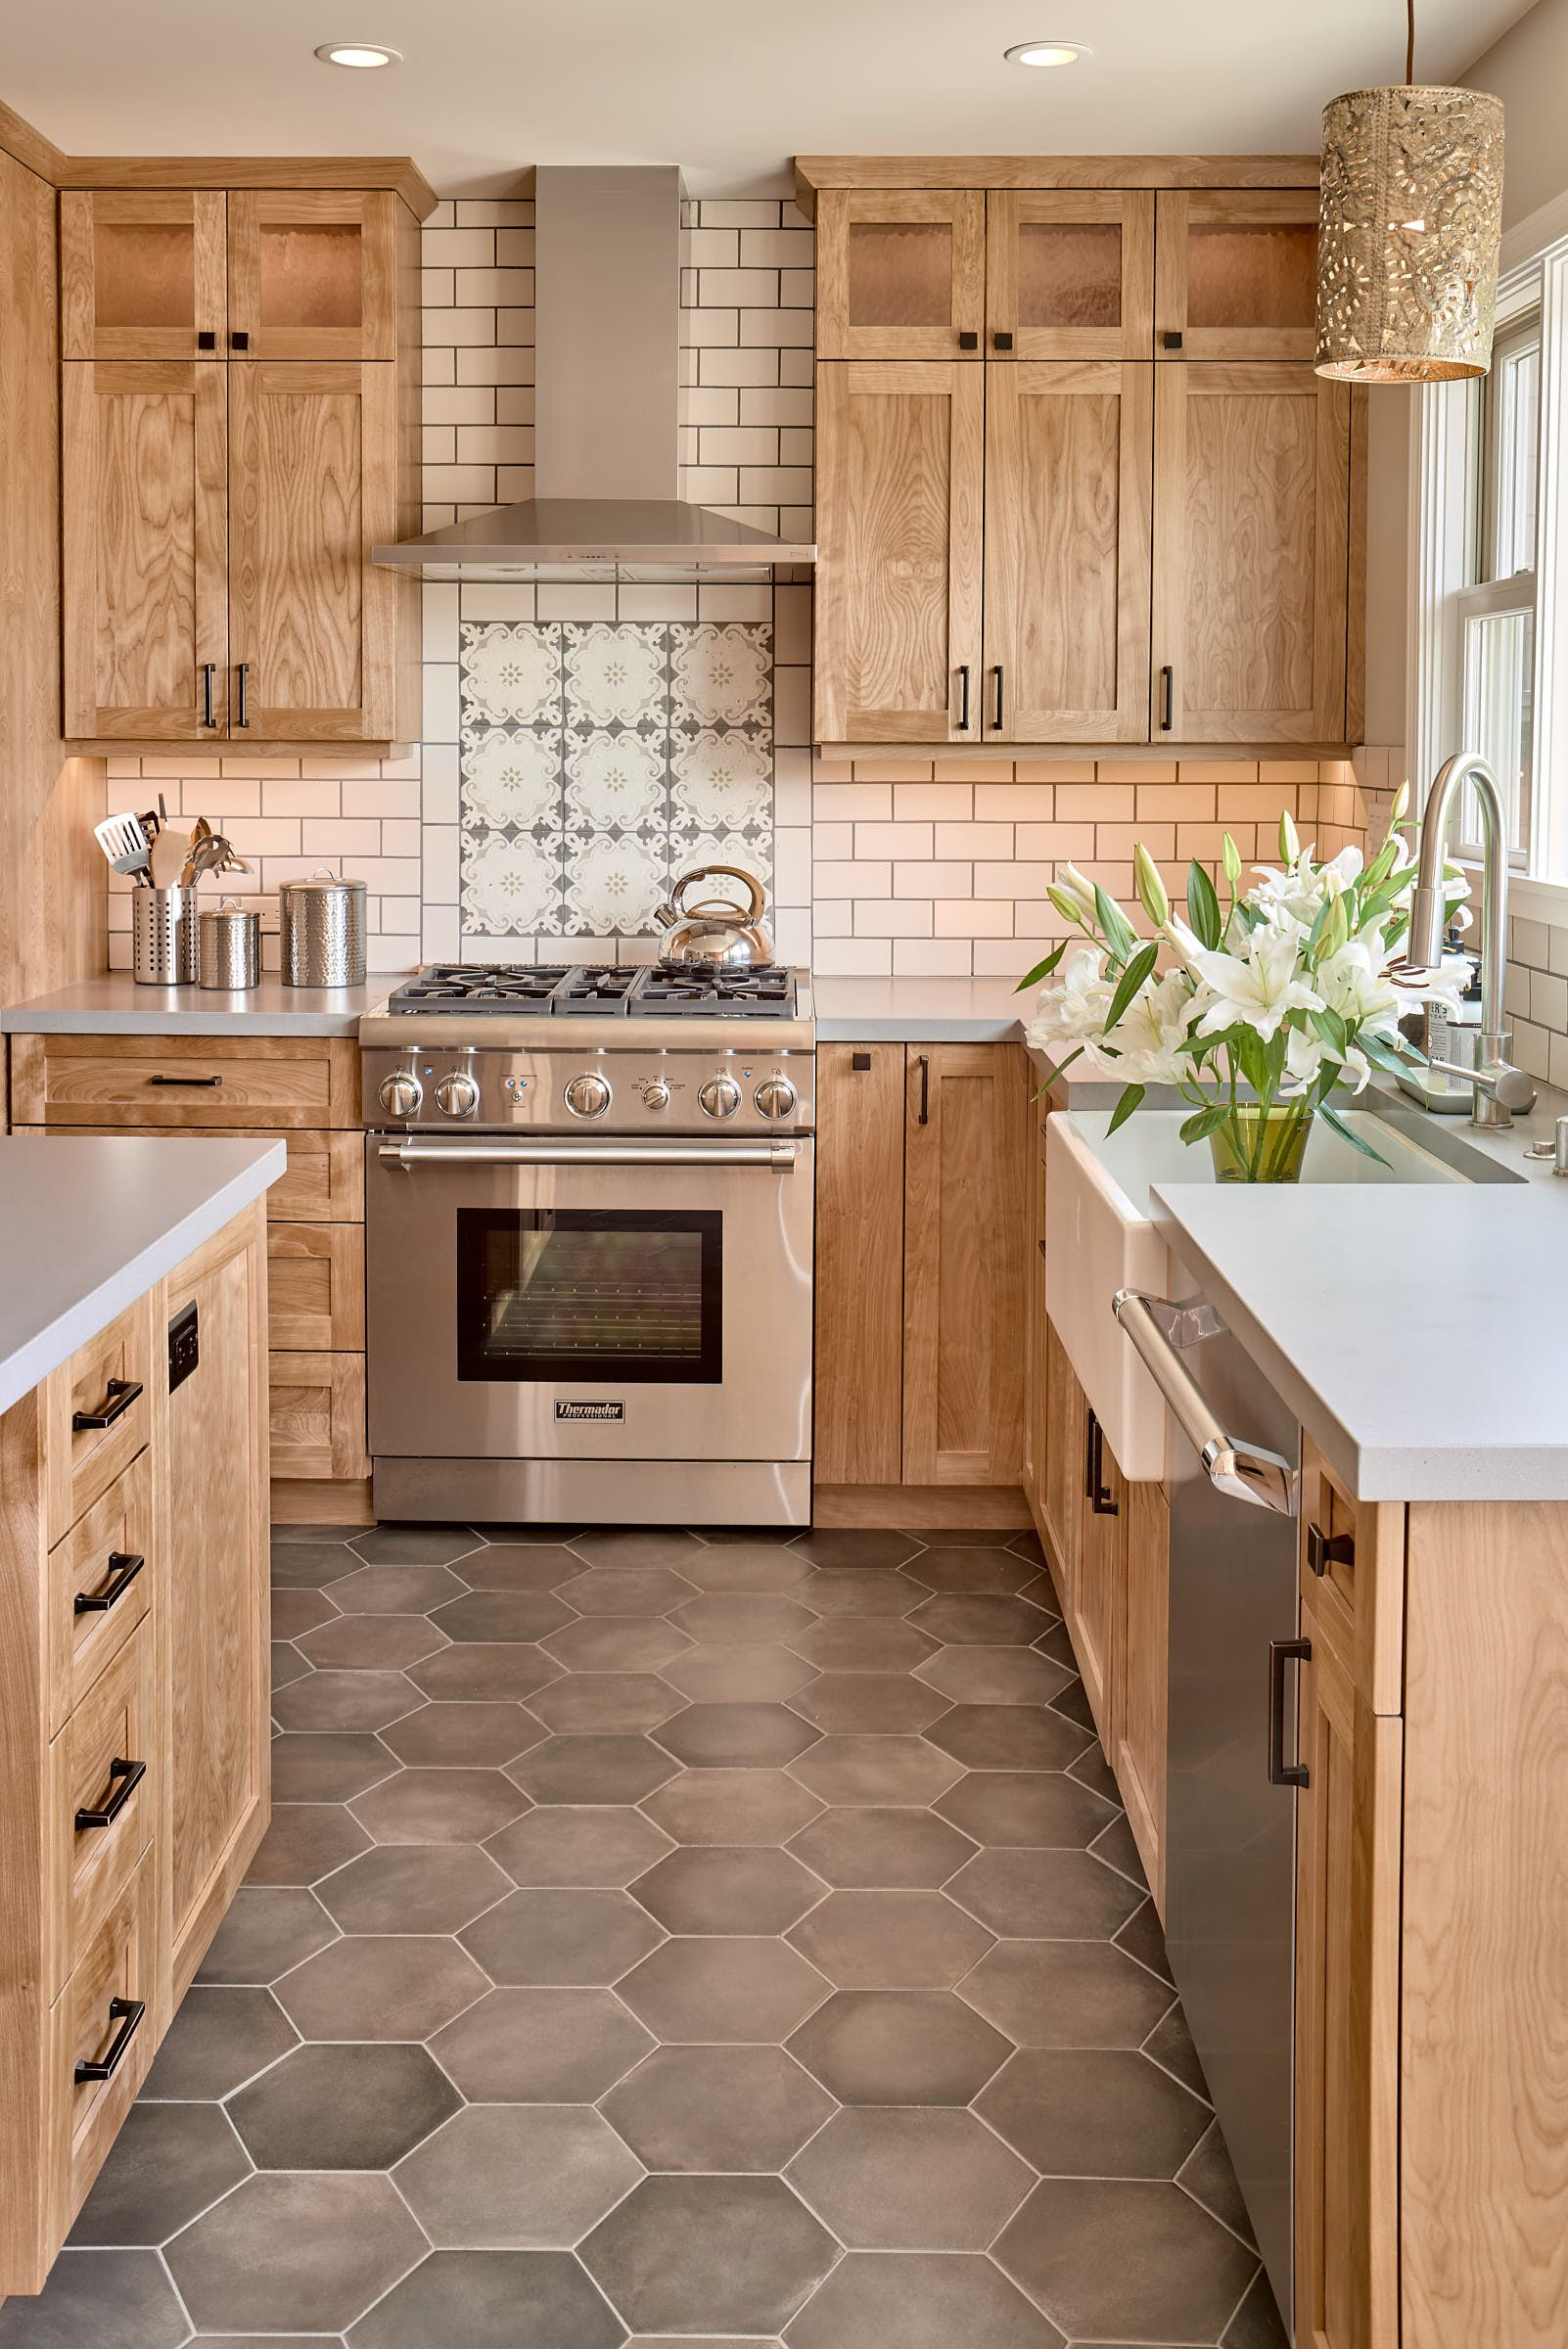 Modern Craftsman Style Kitchen Super Cute Kitchen Design Farmhouse Kitchen Design Farmhouse Kitchen Backsplash